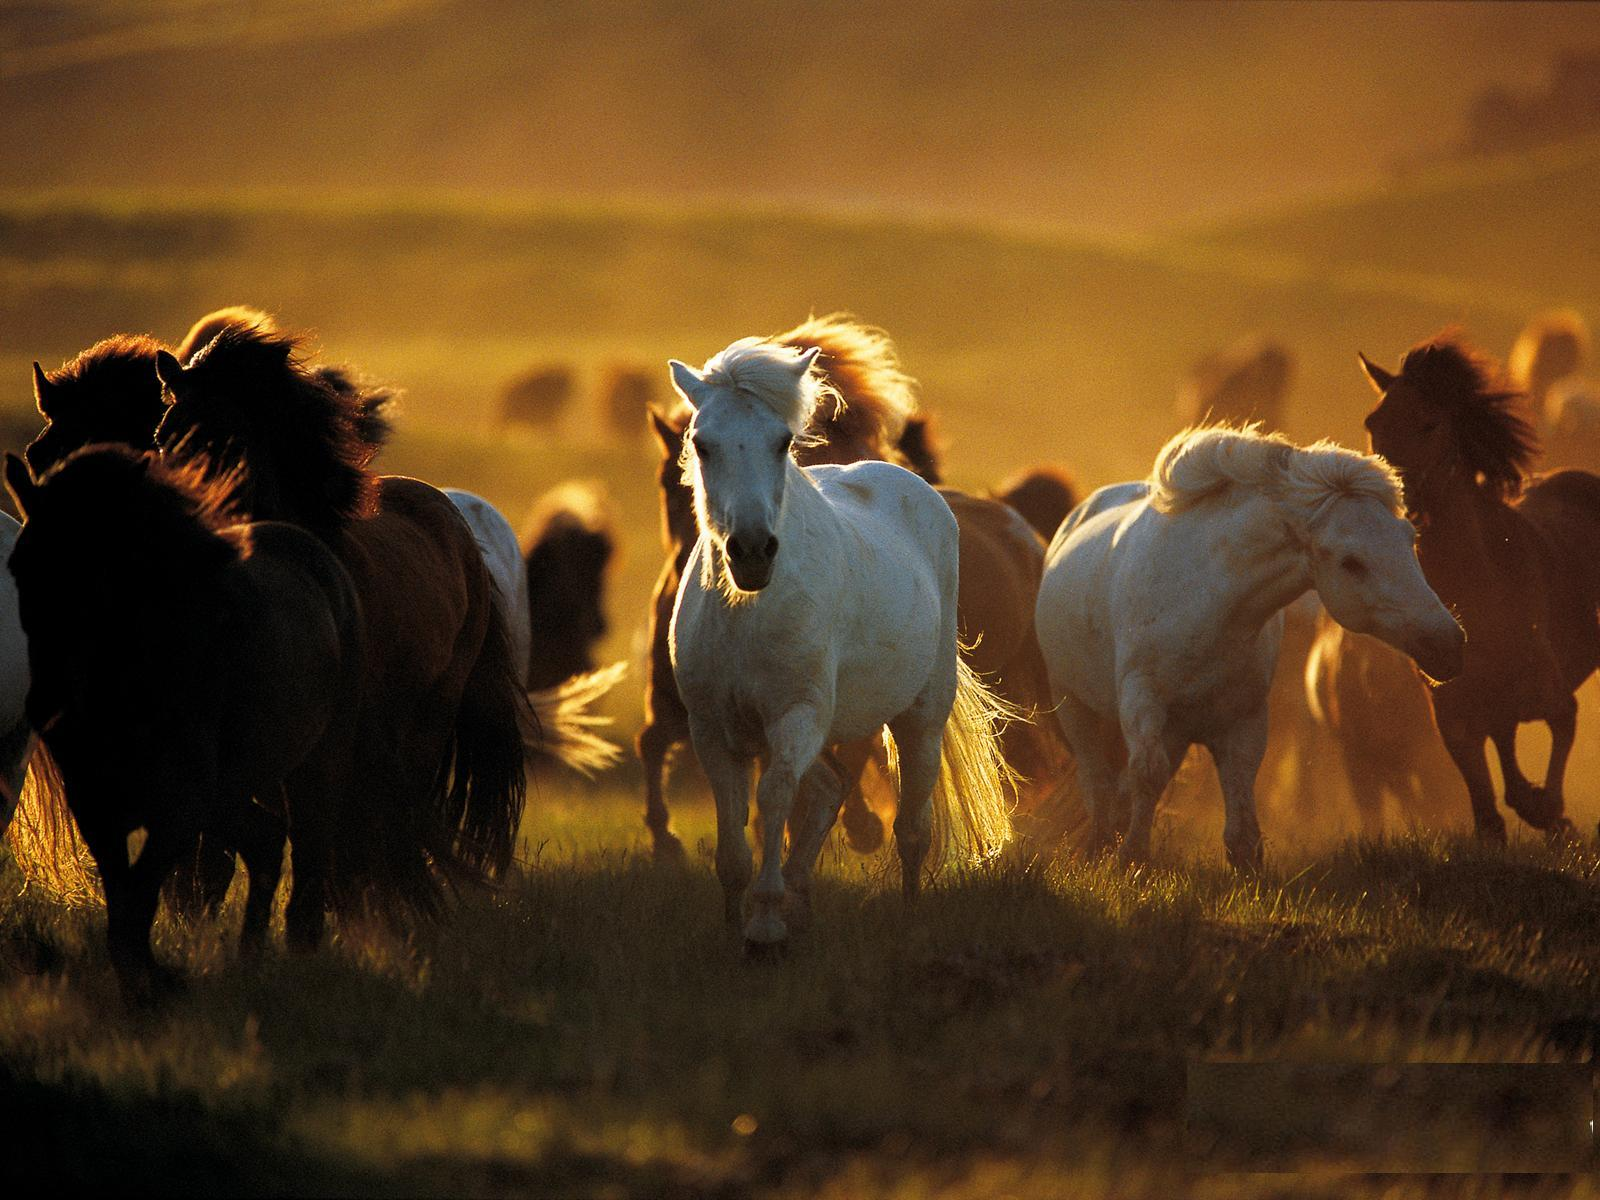 Great   Wallpaper Horse Rose - wild+horses+wallpapers+18  Trends_701330.JPG